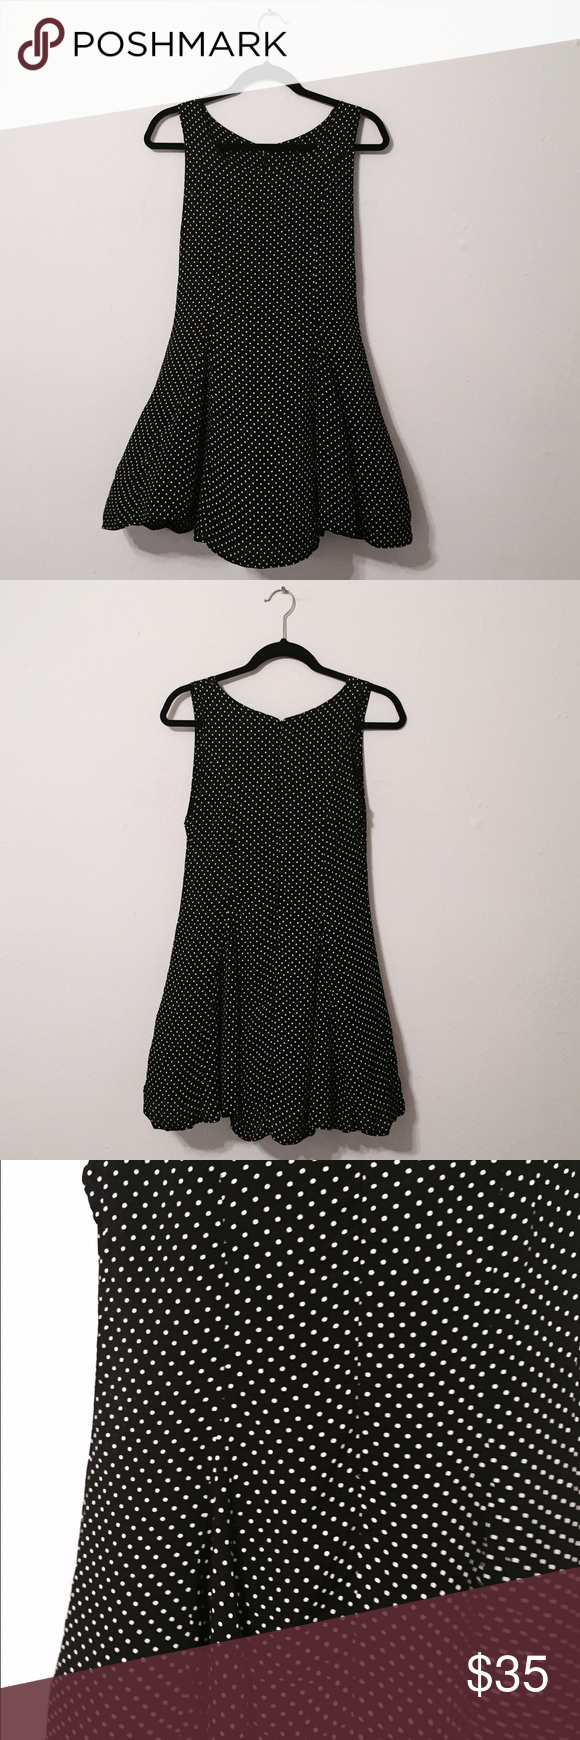 BRANDY MELVILLE Black and White Dot Dress A new without tags dress from Brandy Melville! One size but best for size smalls! Brandy Melville Dresses